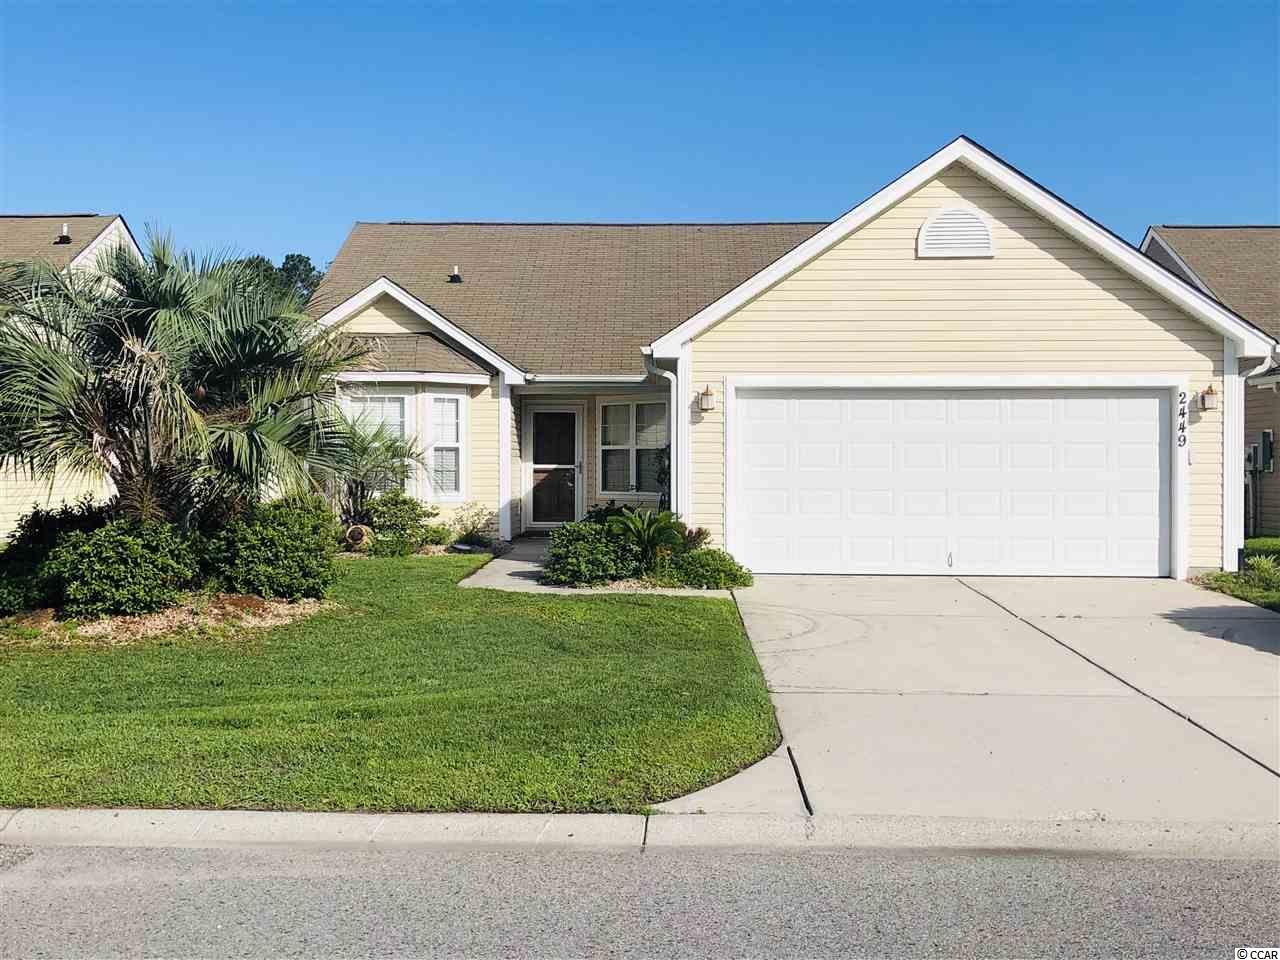 Finally, the home you have been waiting for! Popular Monticello floor plan ready for a new owner. This home has been well cared for. Some of the many improvements include custom paint throughout, tile floors in kitchen and bathrooms, wood look flooring in the living, dining and all three bedrooms, new high efficiency sliding door, finished Carolina room, bathrooms vanities with granite counter tops and upgraded lighting fixtures. Outside you find a fully fenced back yard with large patio and lawn sprinklers. This home is located in the Avalon community which offers resort style swimming pool, playground, baseball field, soccer field, basketball court and includes patrolling security. Located within the Carolina Forest School district and only minutes from shopping, restaurants, the beach and all that Myrtle Beach has to offer.